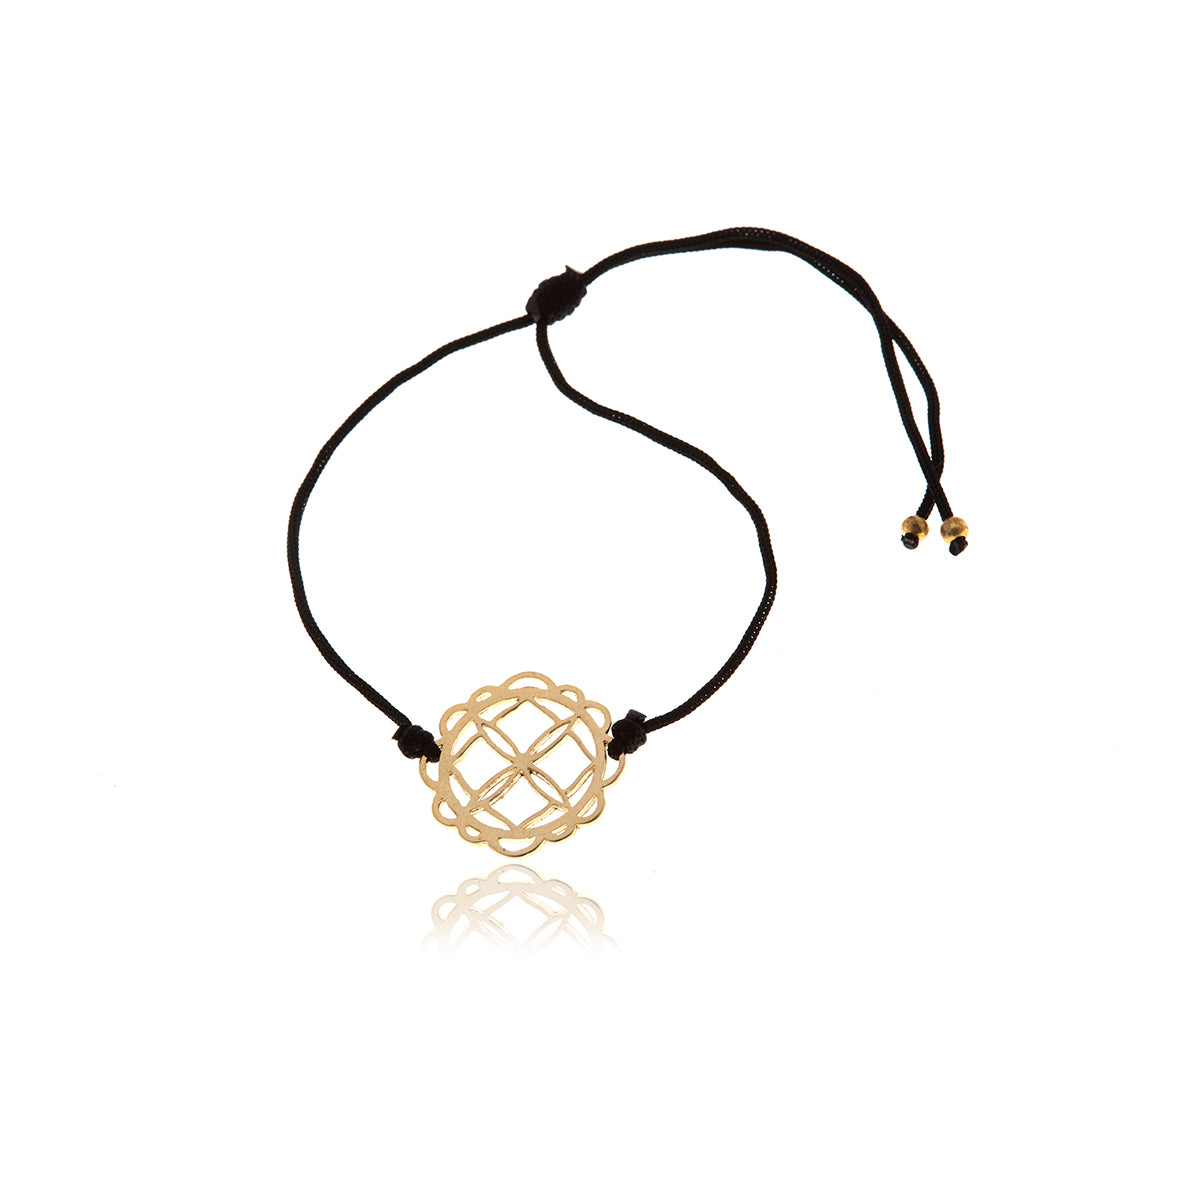 Empower Women Signature Bracelet - MCK Brands